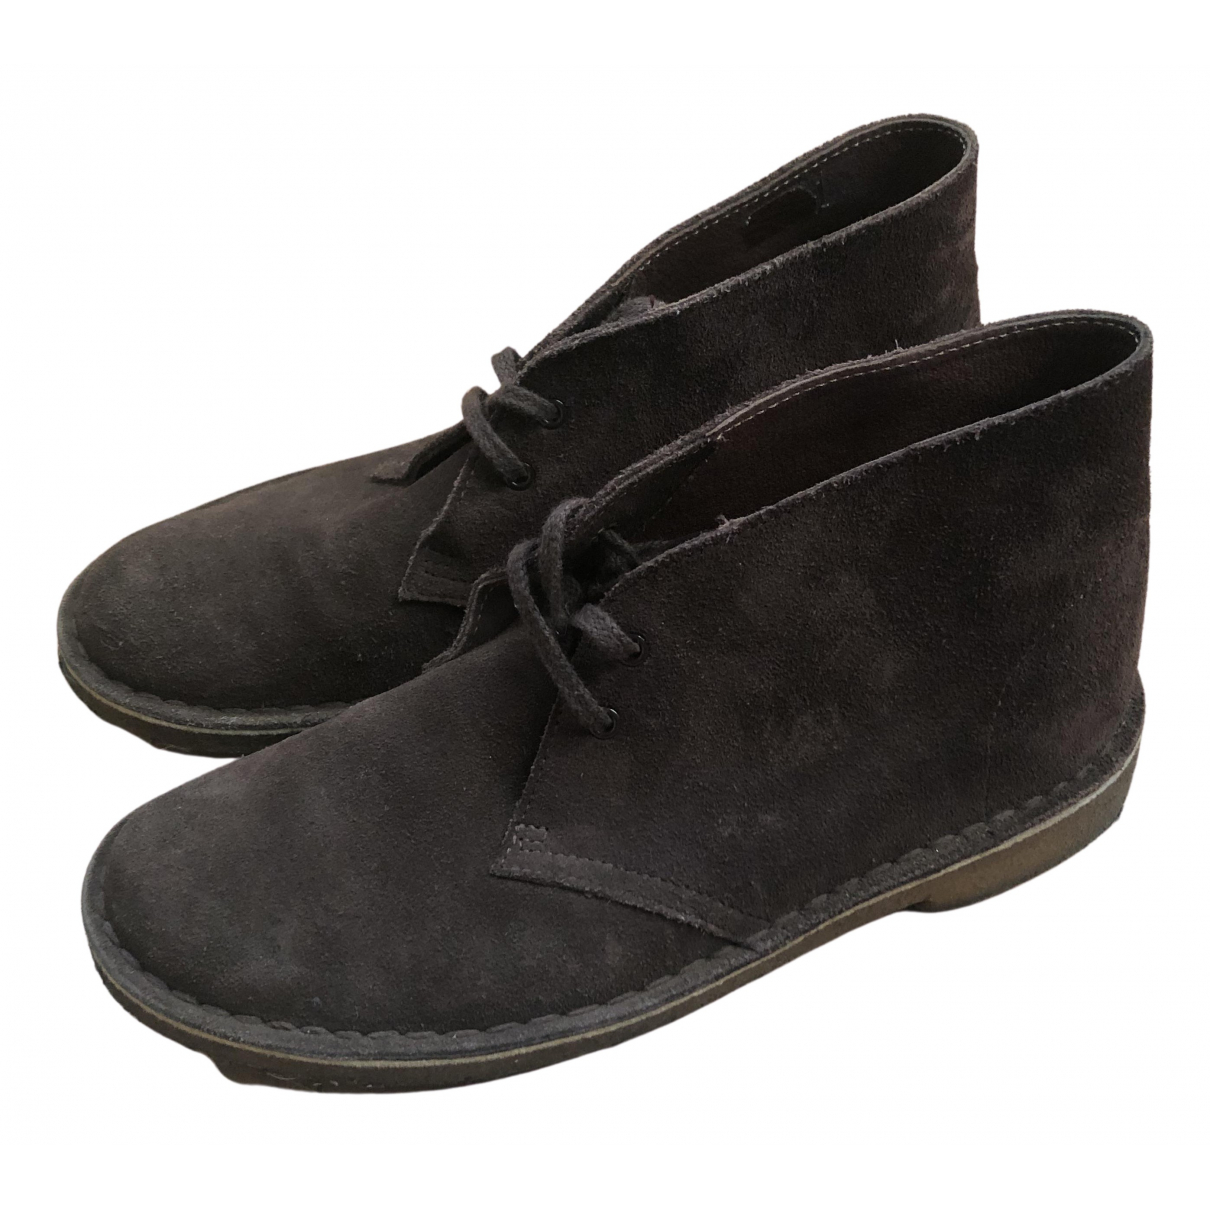 Clarks N Brown Suede Ankle boots for Women 7.5 US